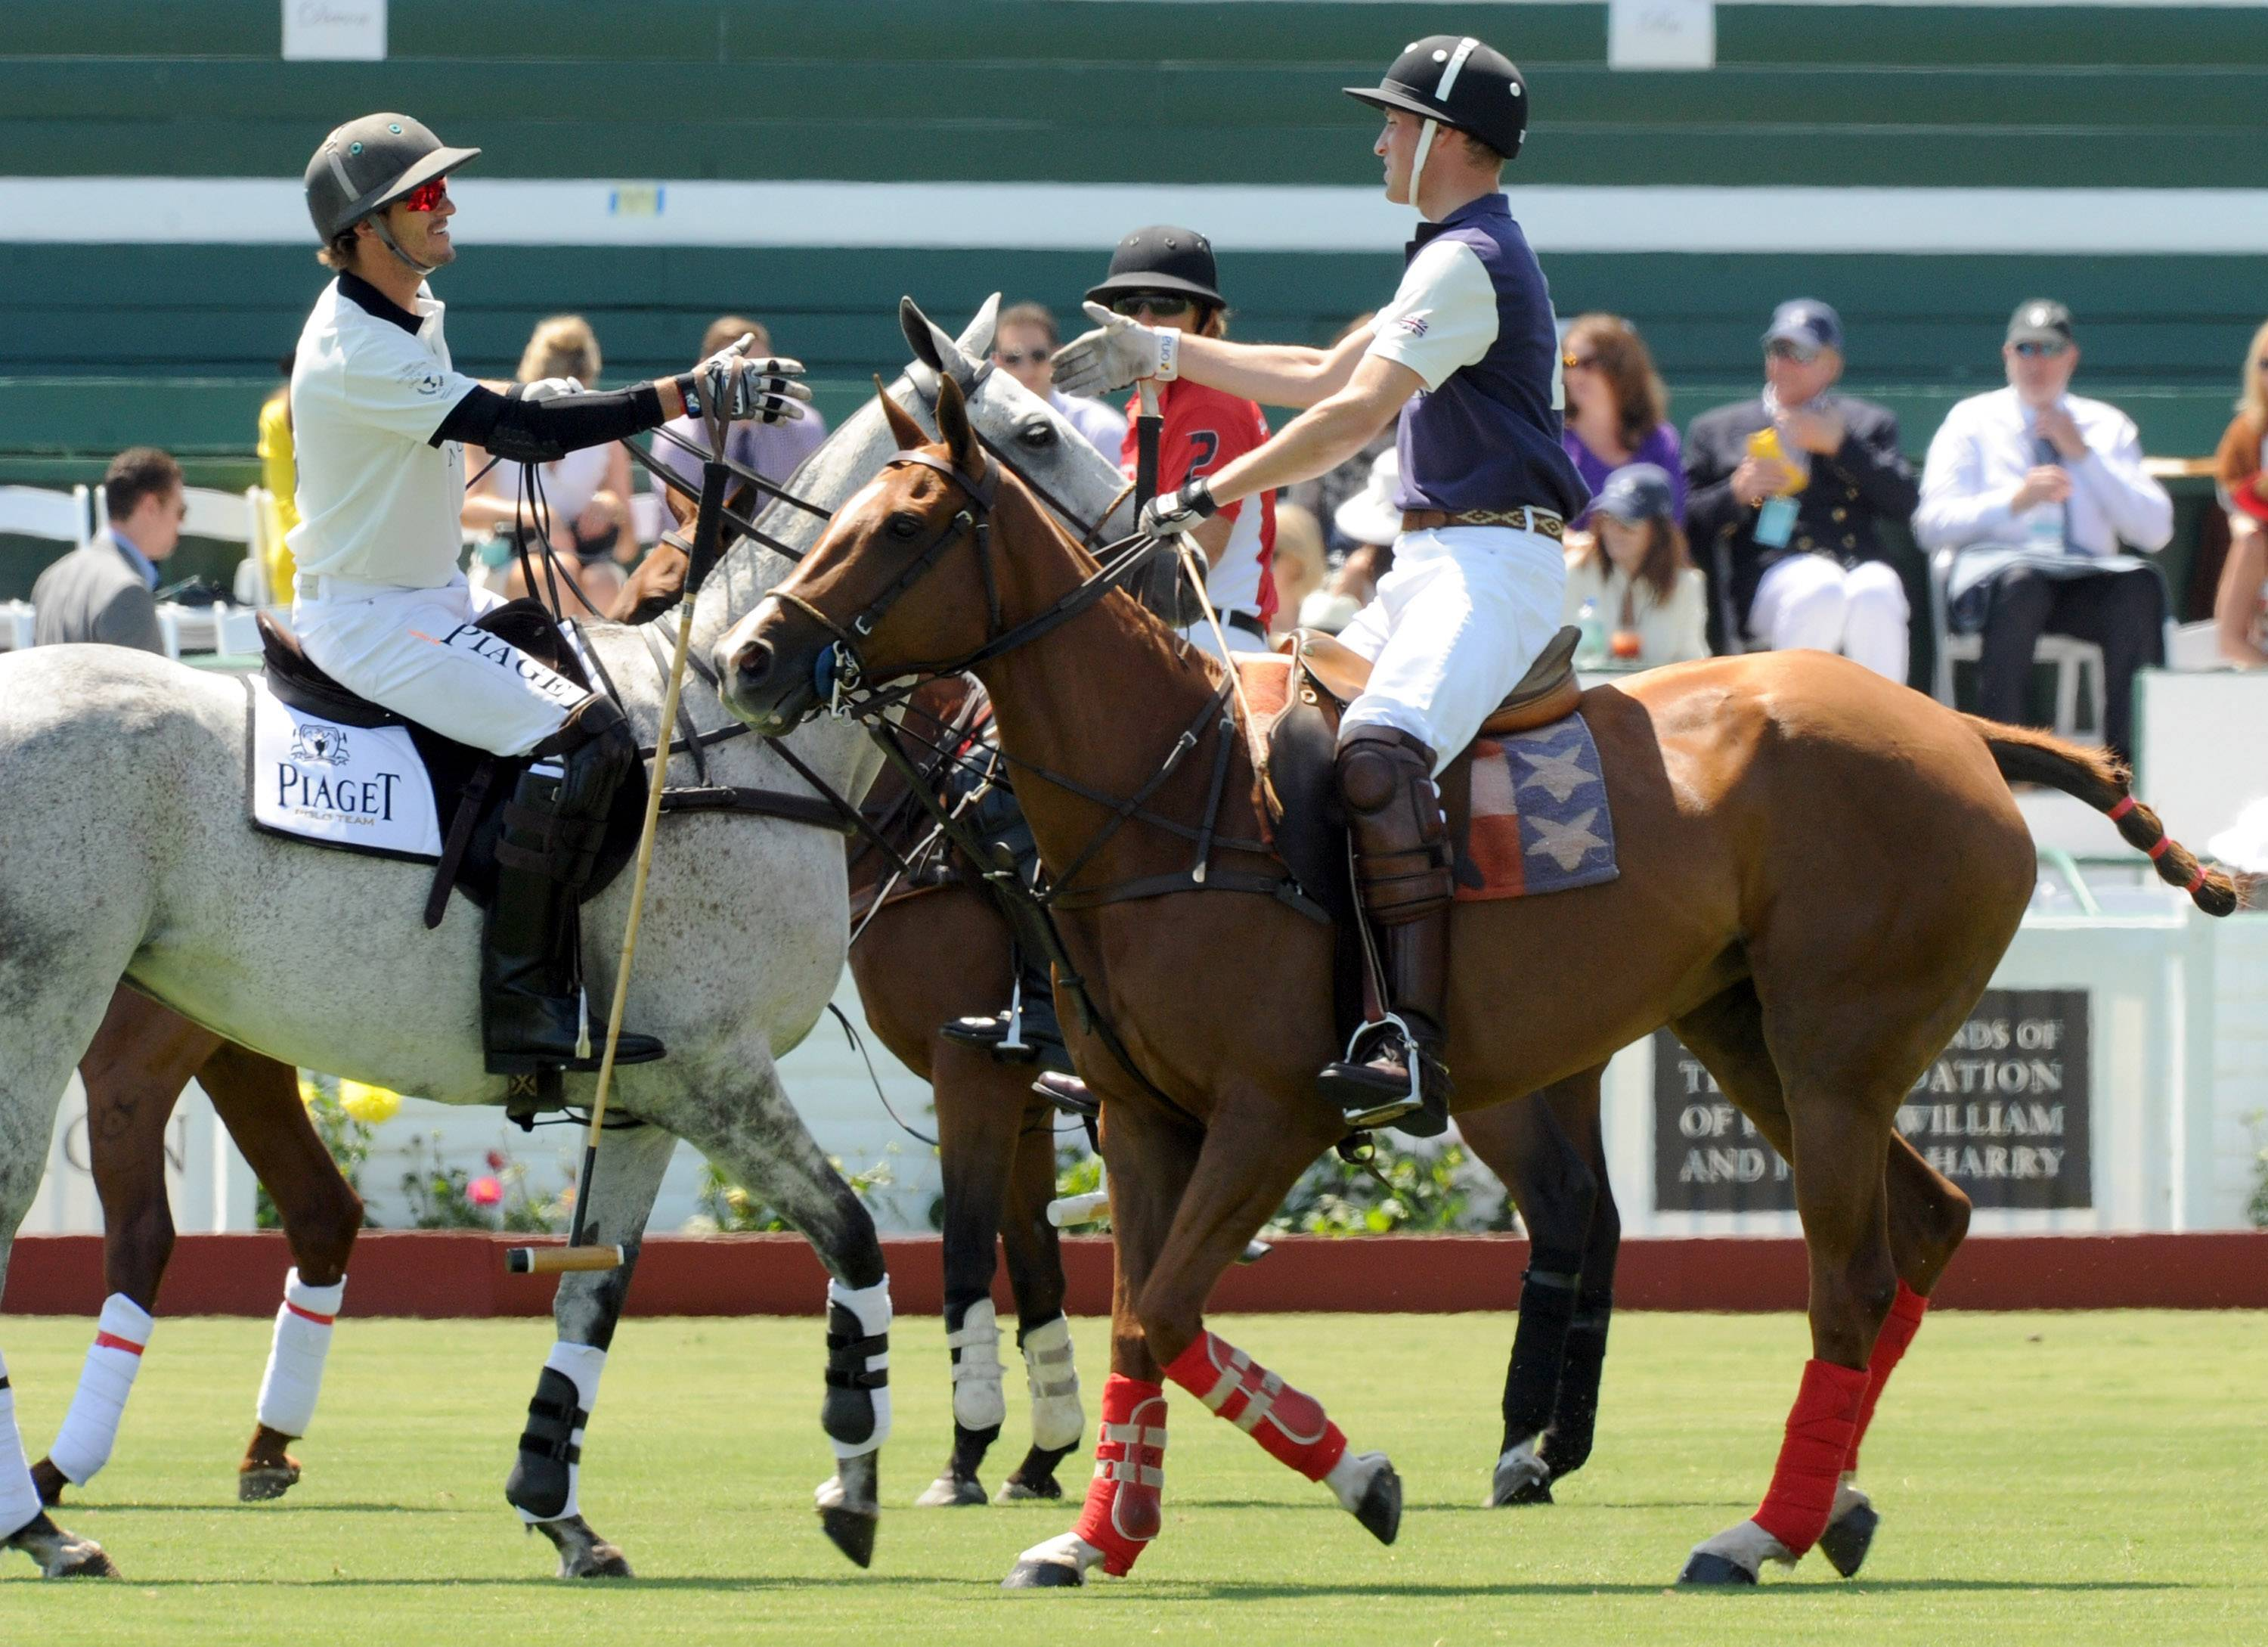 Prince William, Duke of Cambridge (R) competes in the Foundation Polo Challenge held at the Santa Barbara Polo and Racquet Club on July 9, 2011 in Santa Barbara, California.